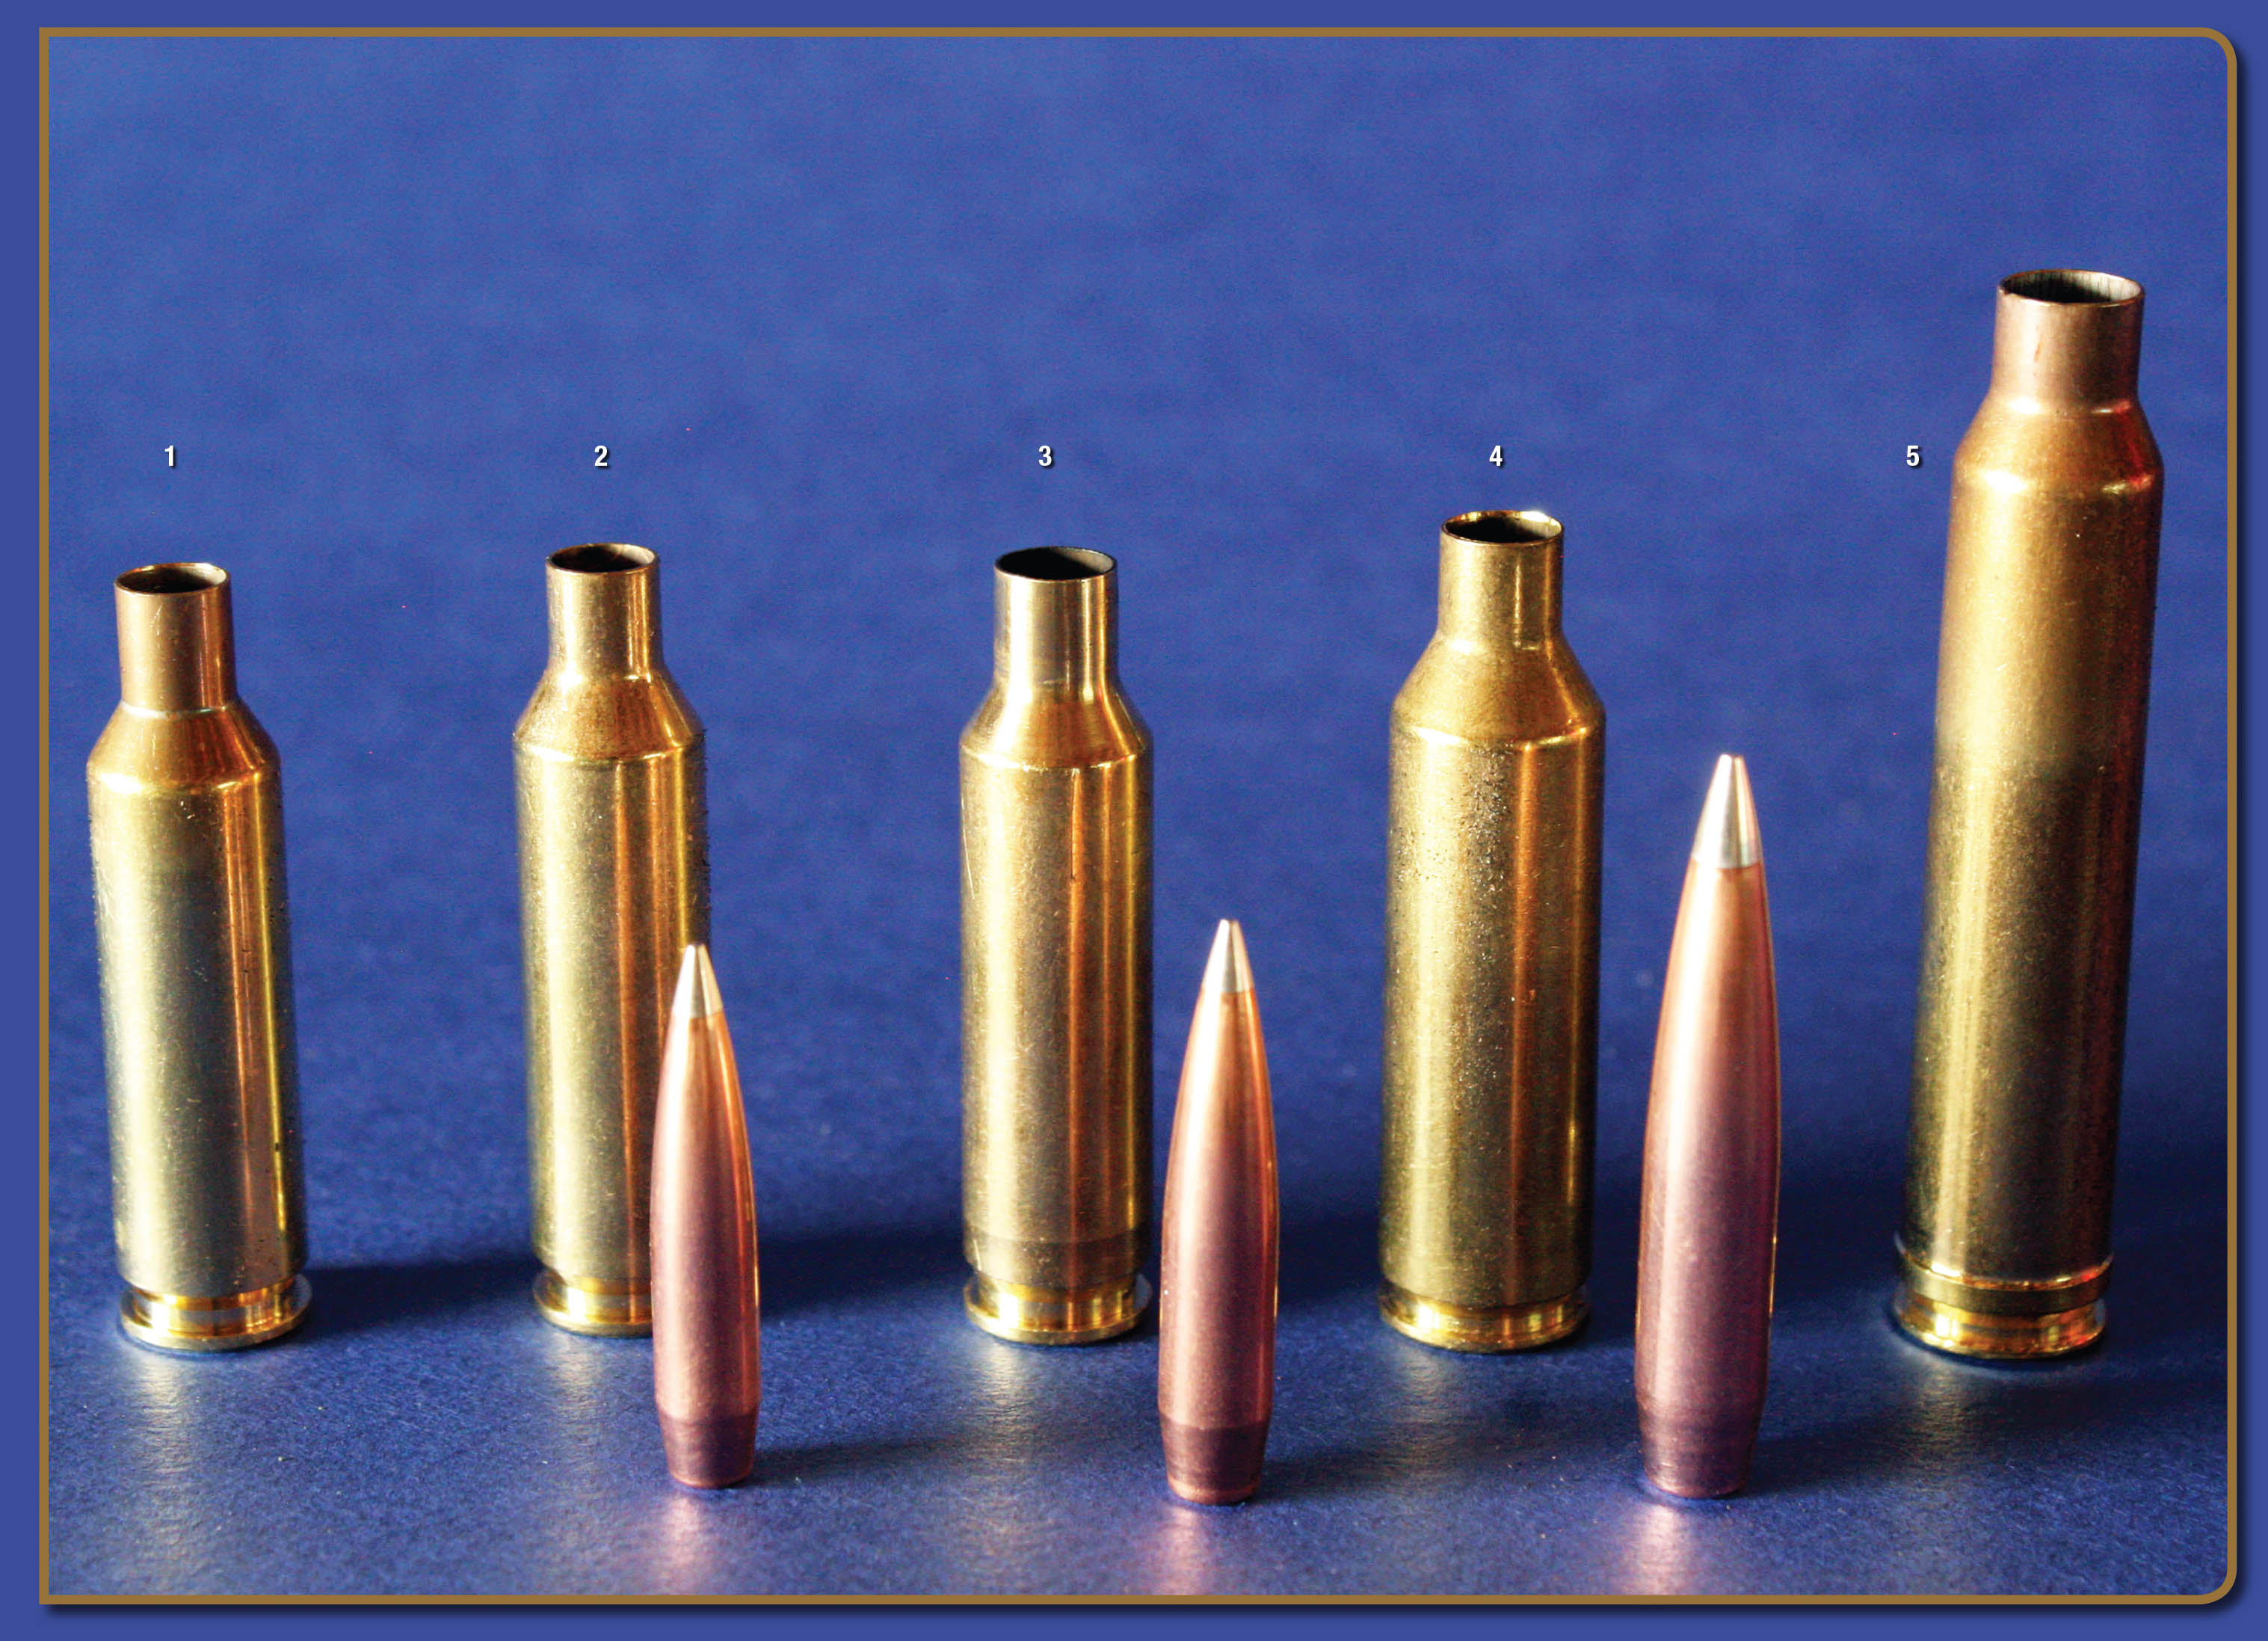 From left, A-TIP bullets include the 110-grain 6mm, 135-grain 6.5mm and 230-grain .30 caliber. Cartridges include the (1) 6XC, (2) 6mm Creedmoor, (3) 6.5 Creedmoor, (4) 6.5 PRC and the (5) .300 Winchester Magnum.